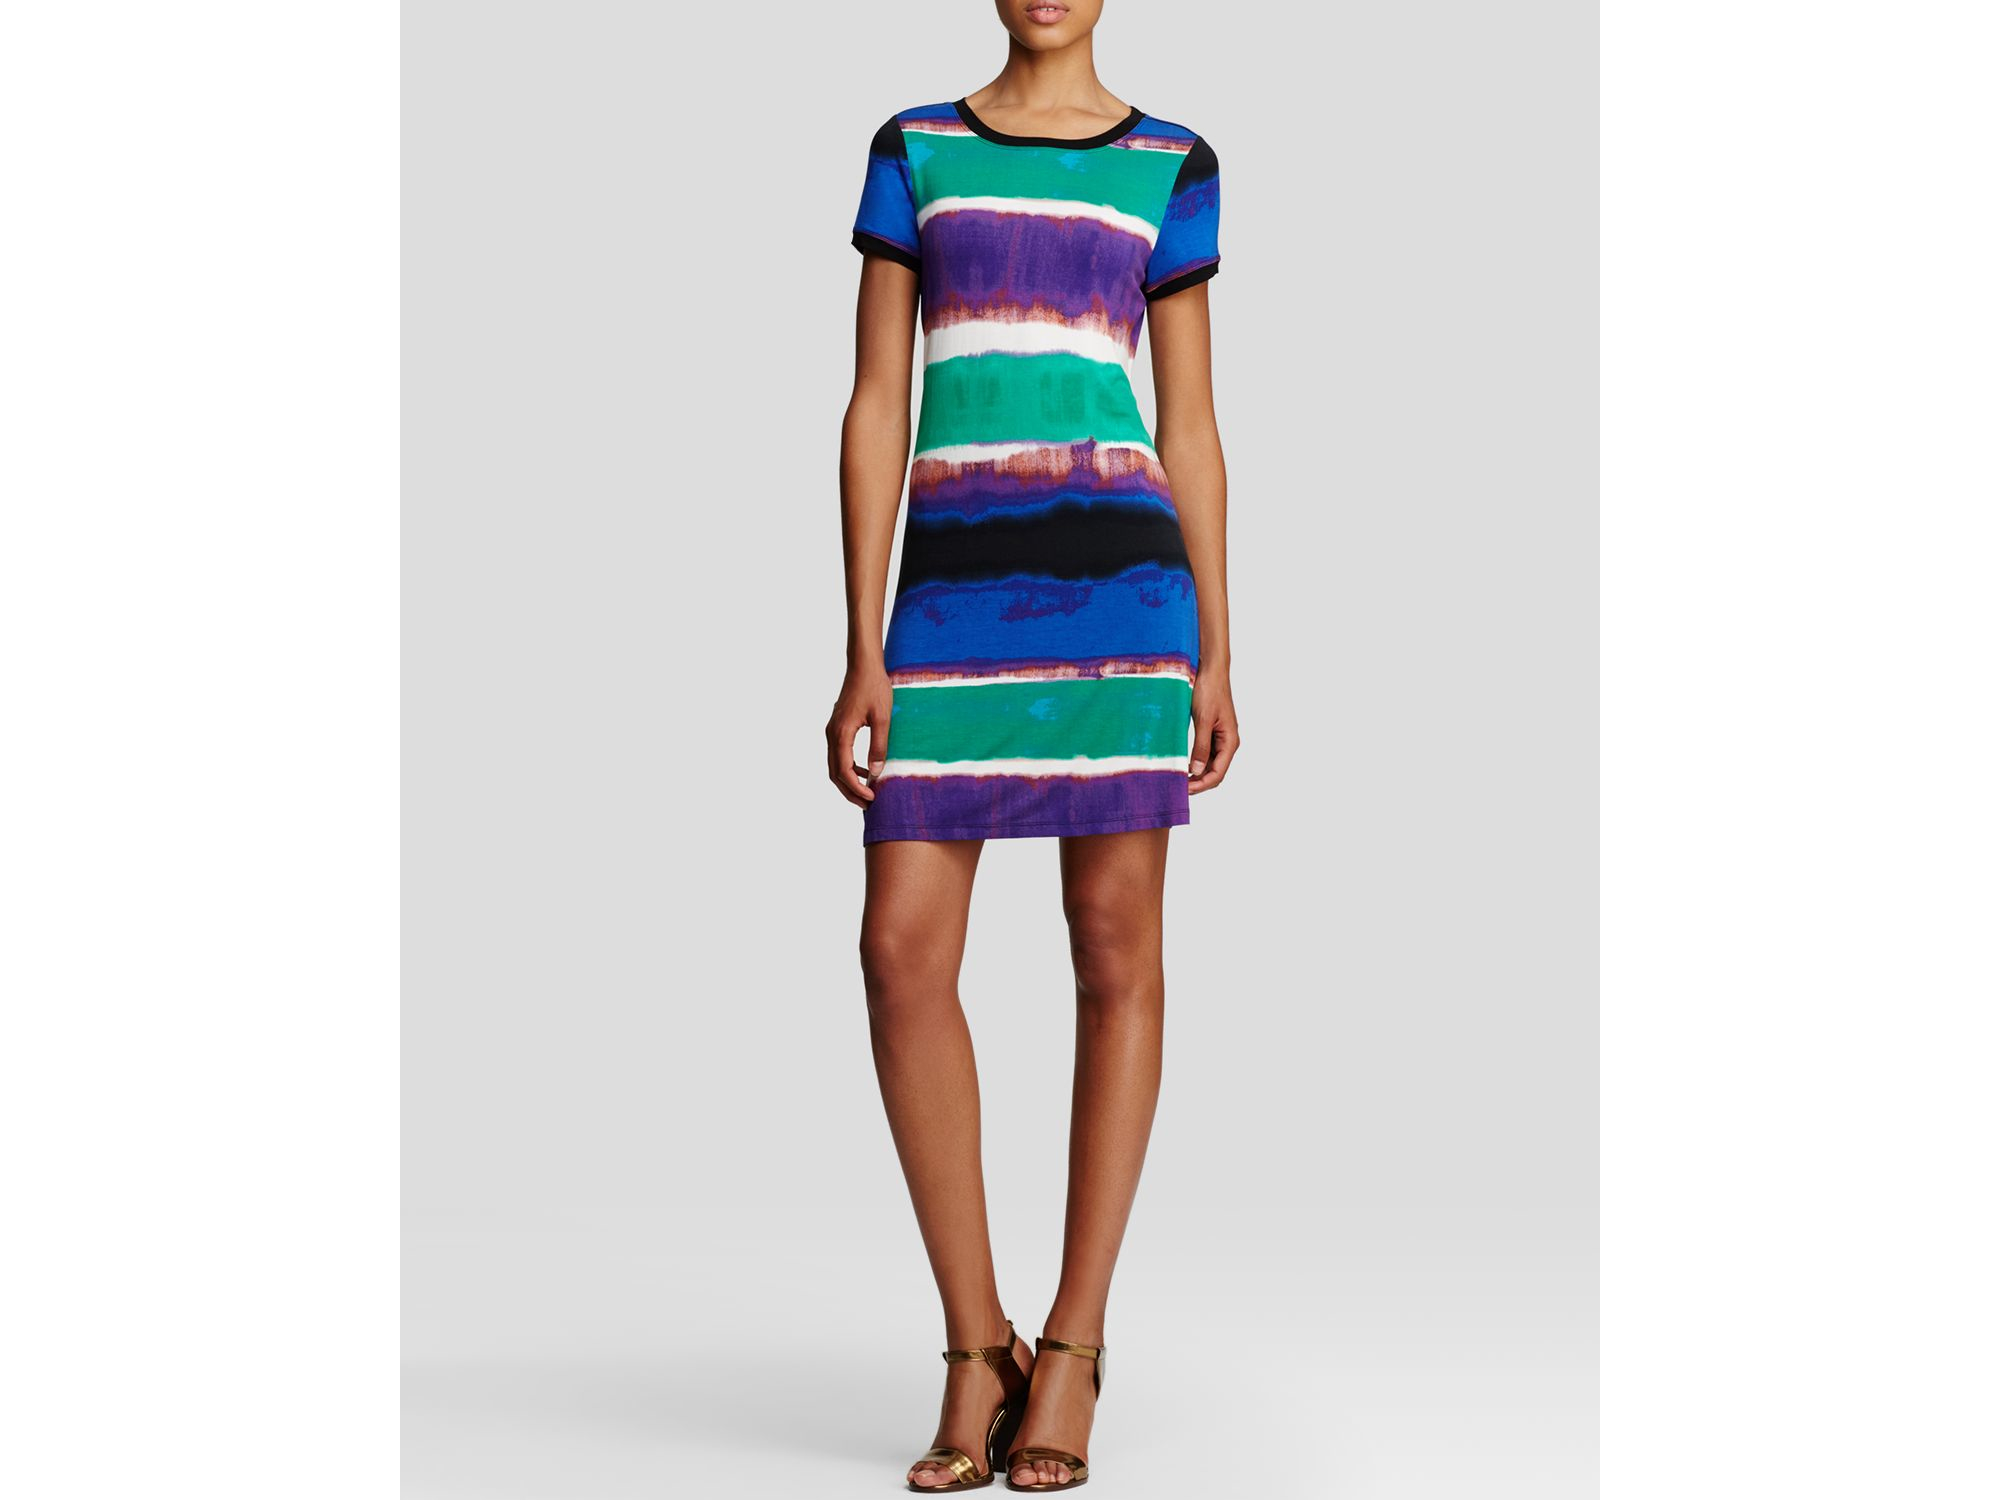 c7fafe46bc5 Lyst - Calvin Klein Abstract Stripe Tee Dress - Bloomingdale s ...